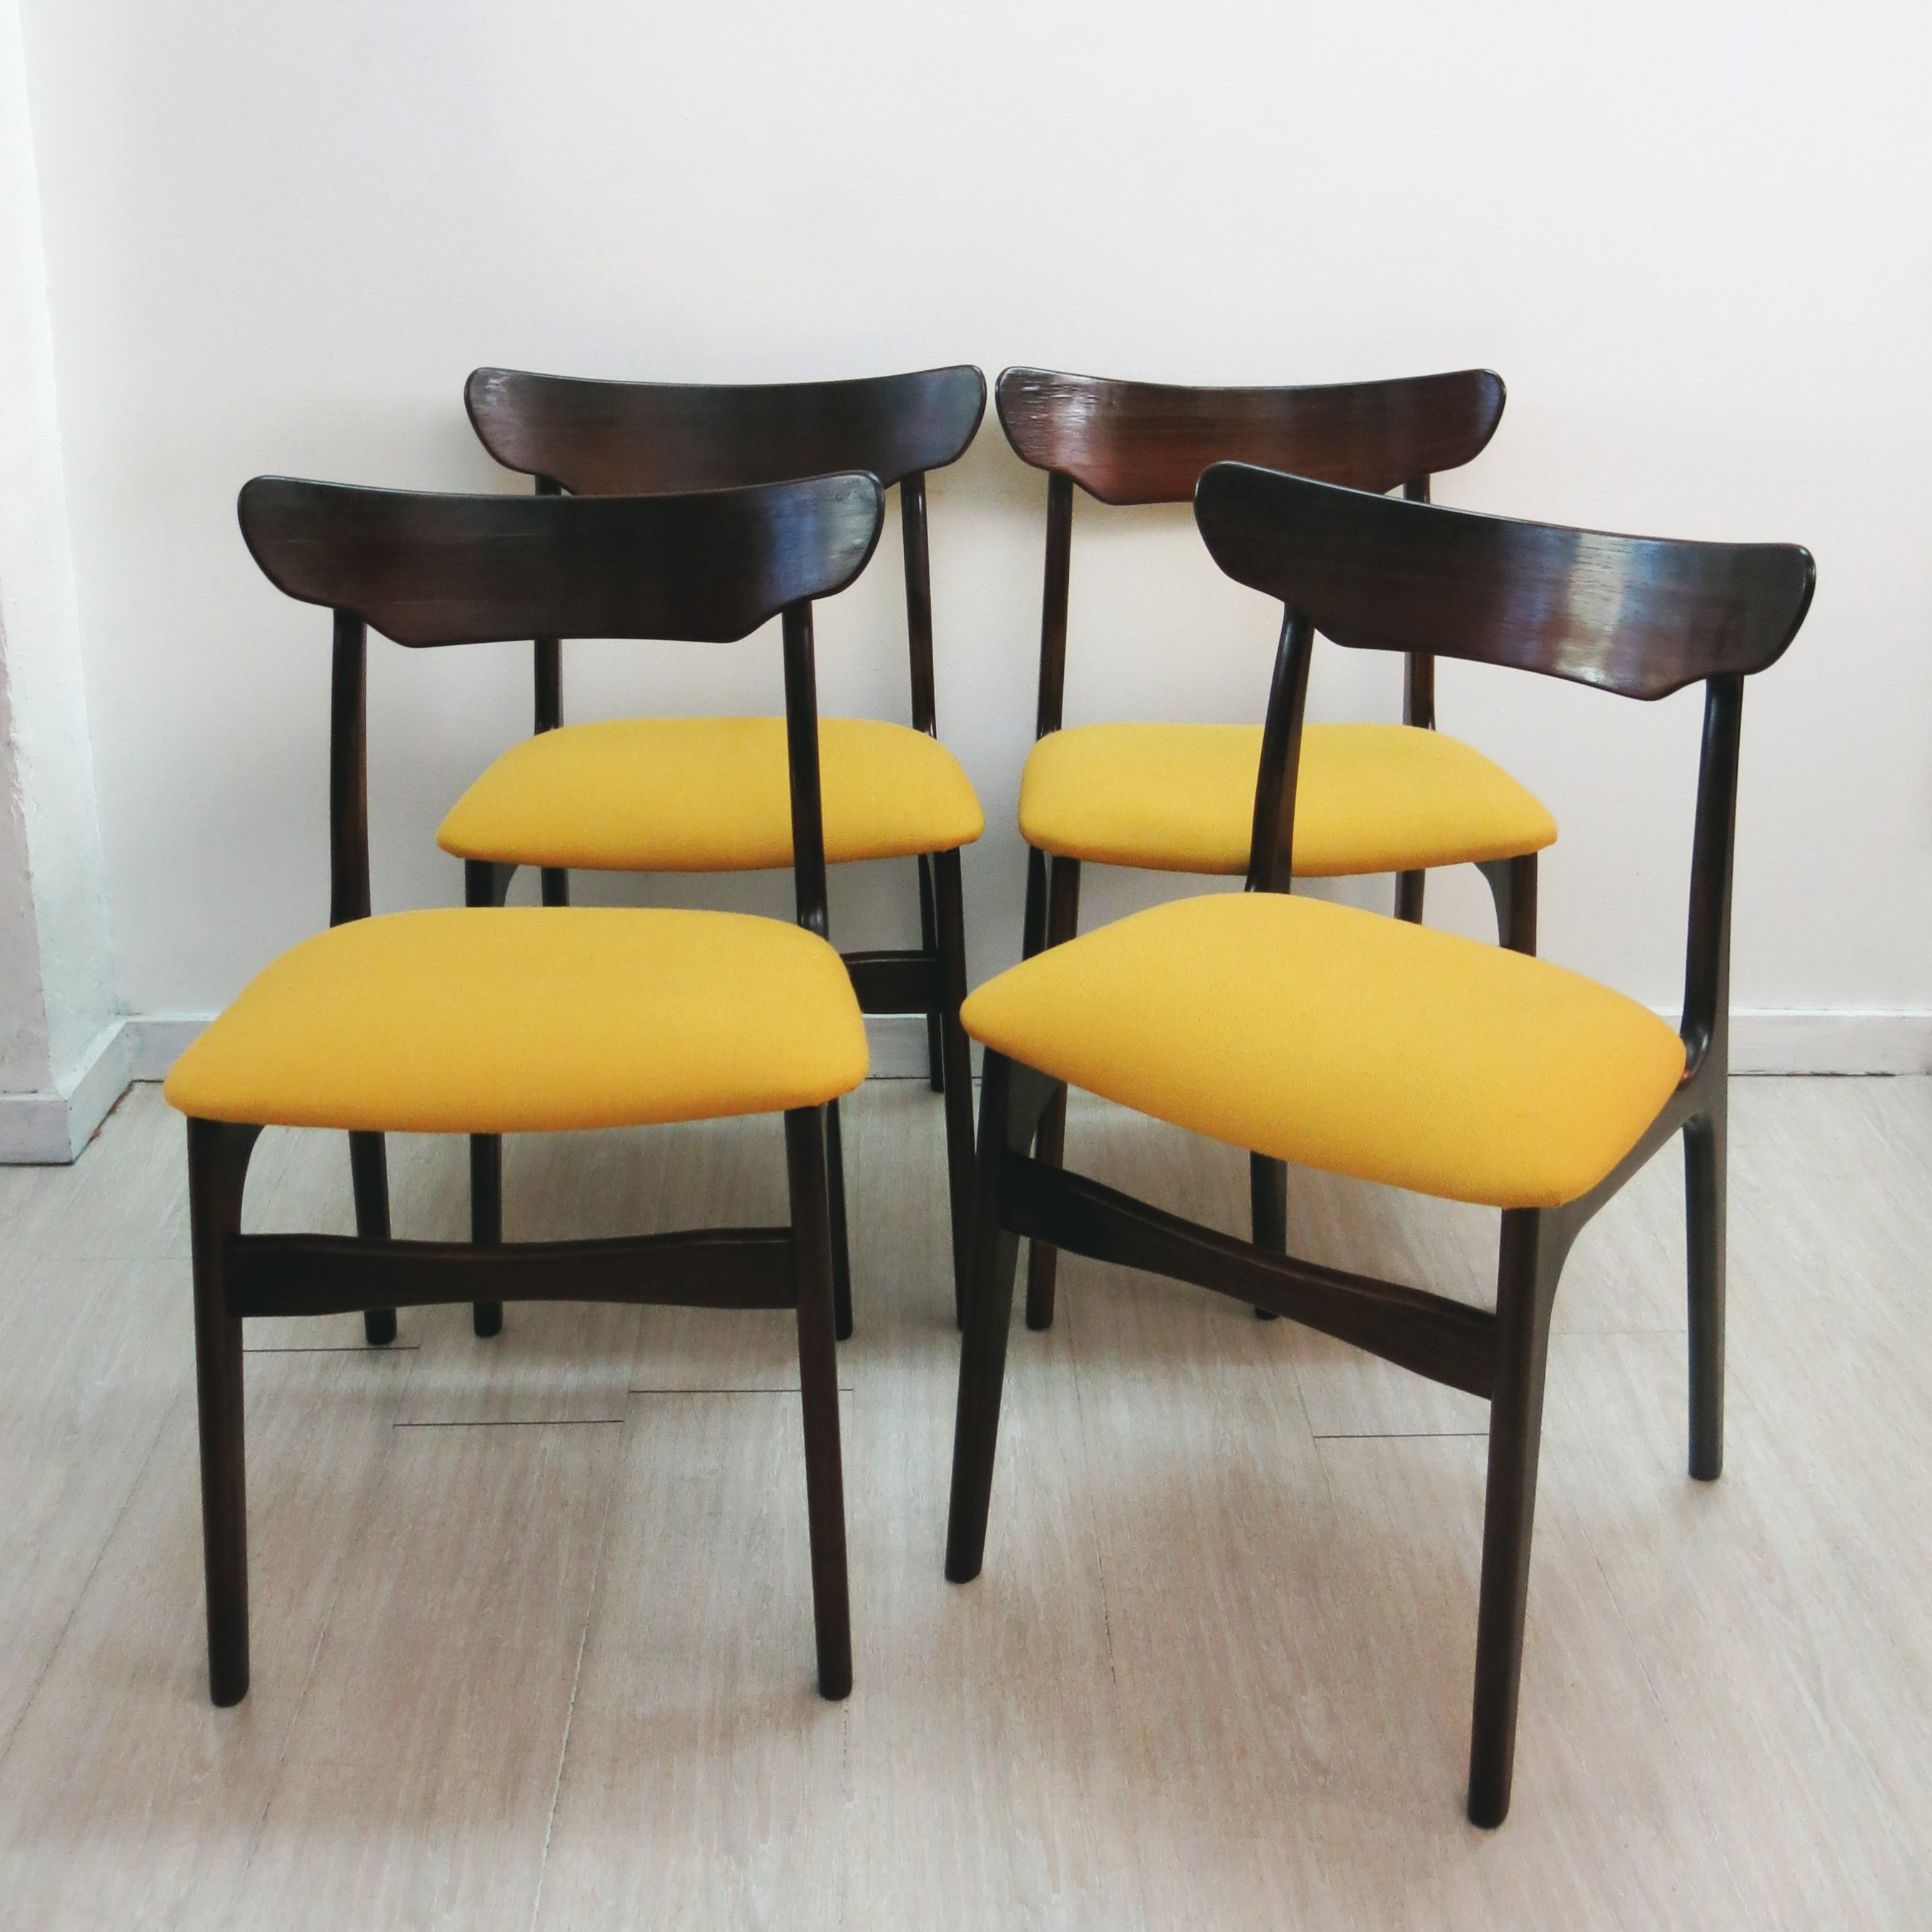 Set of 4 dining chairs in rosewood and fabric SCHIONNING